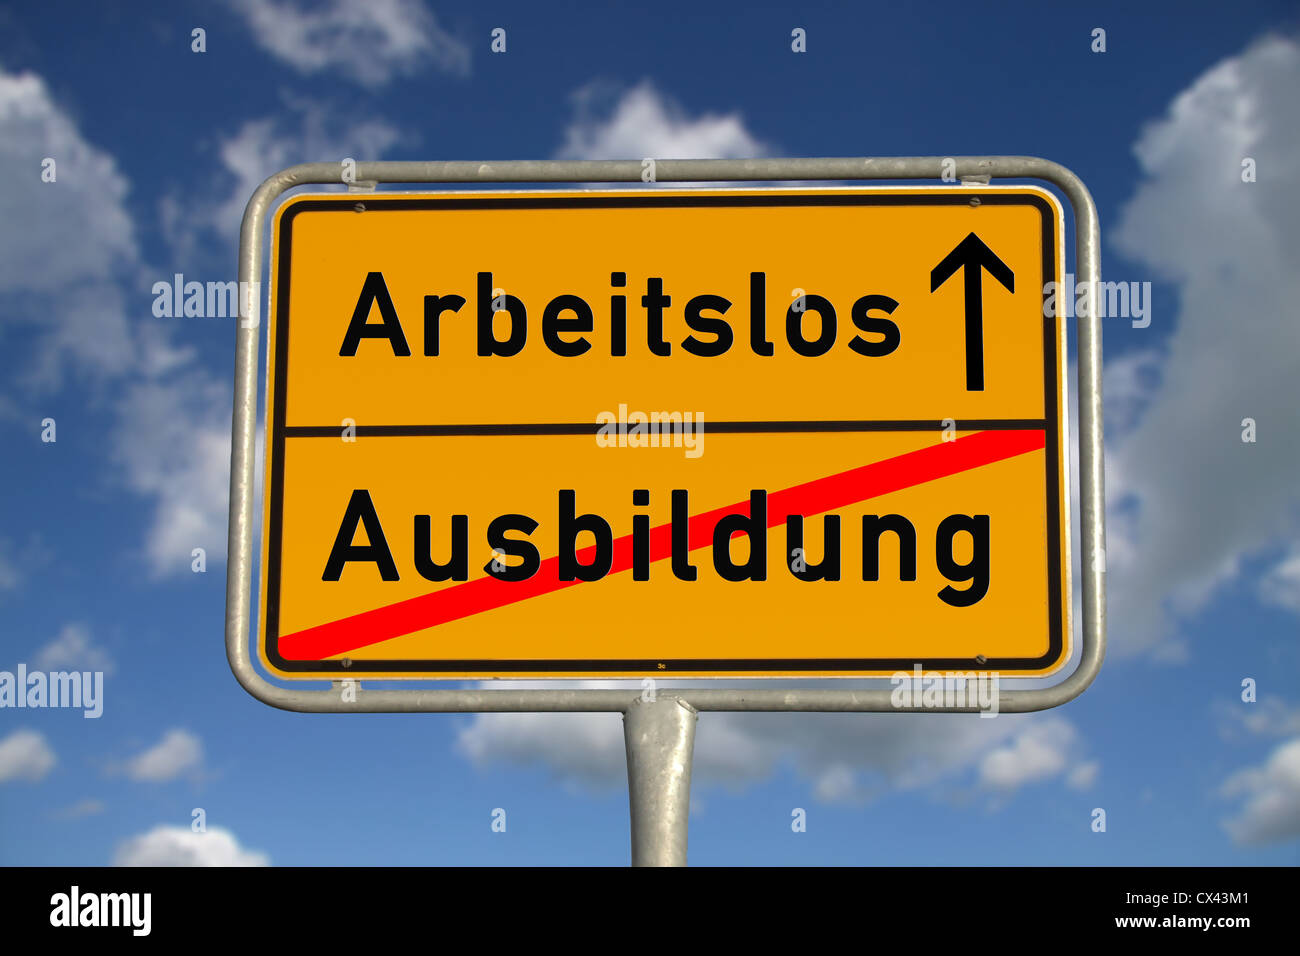 German road sign apprenticeship and unemployed with blue sky and white clouds - Stock Image